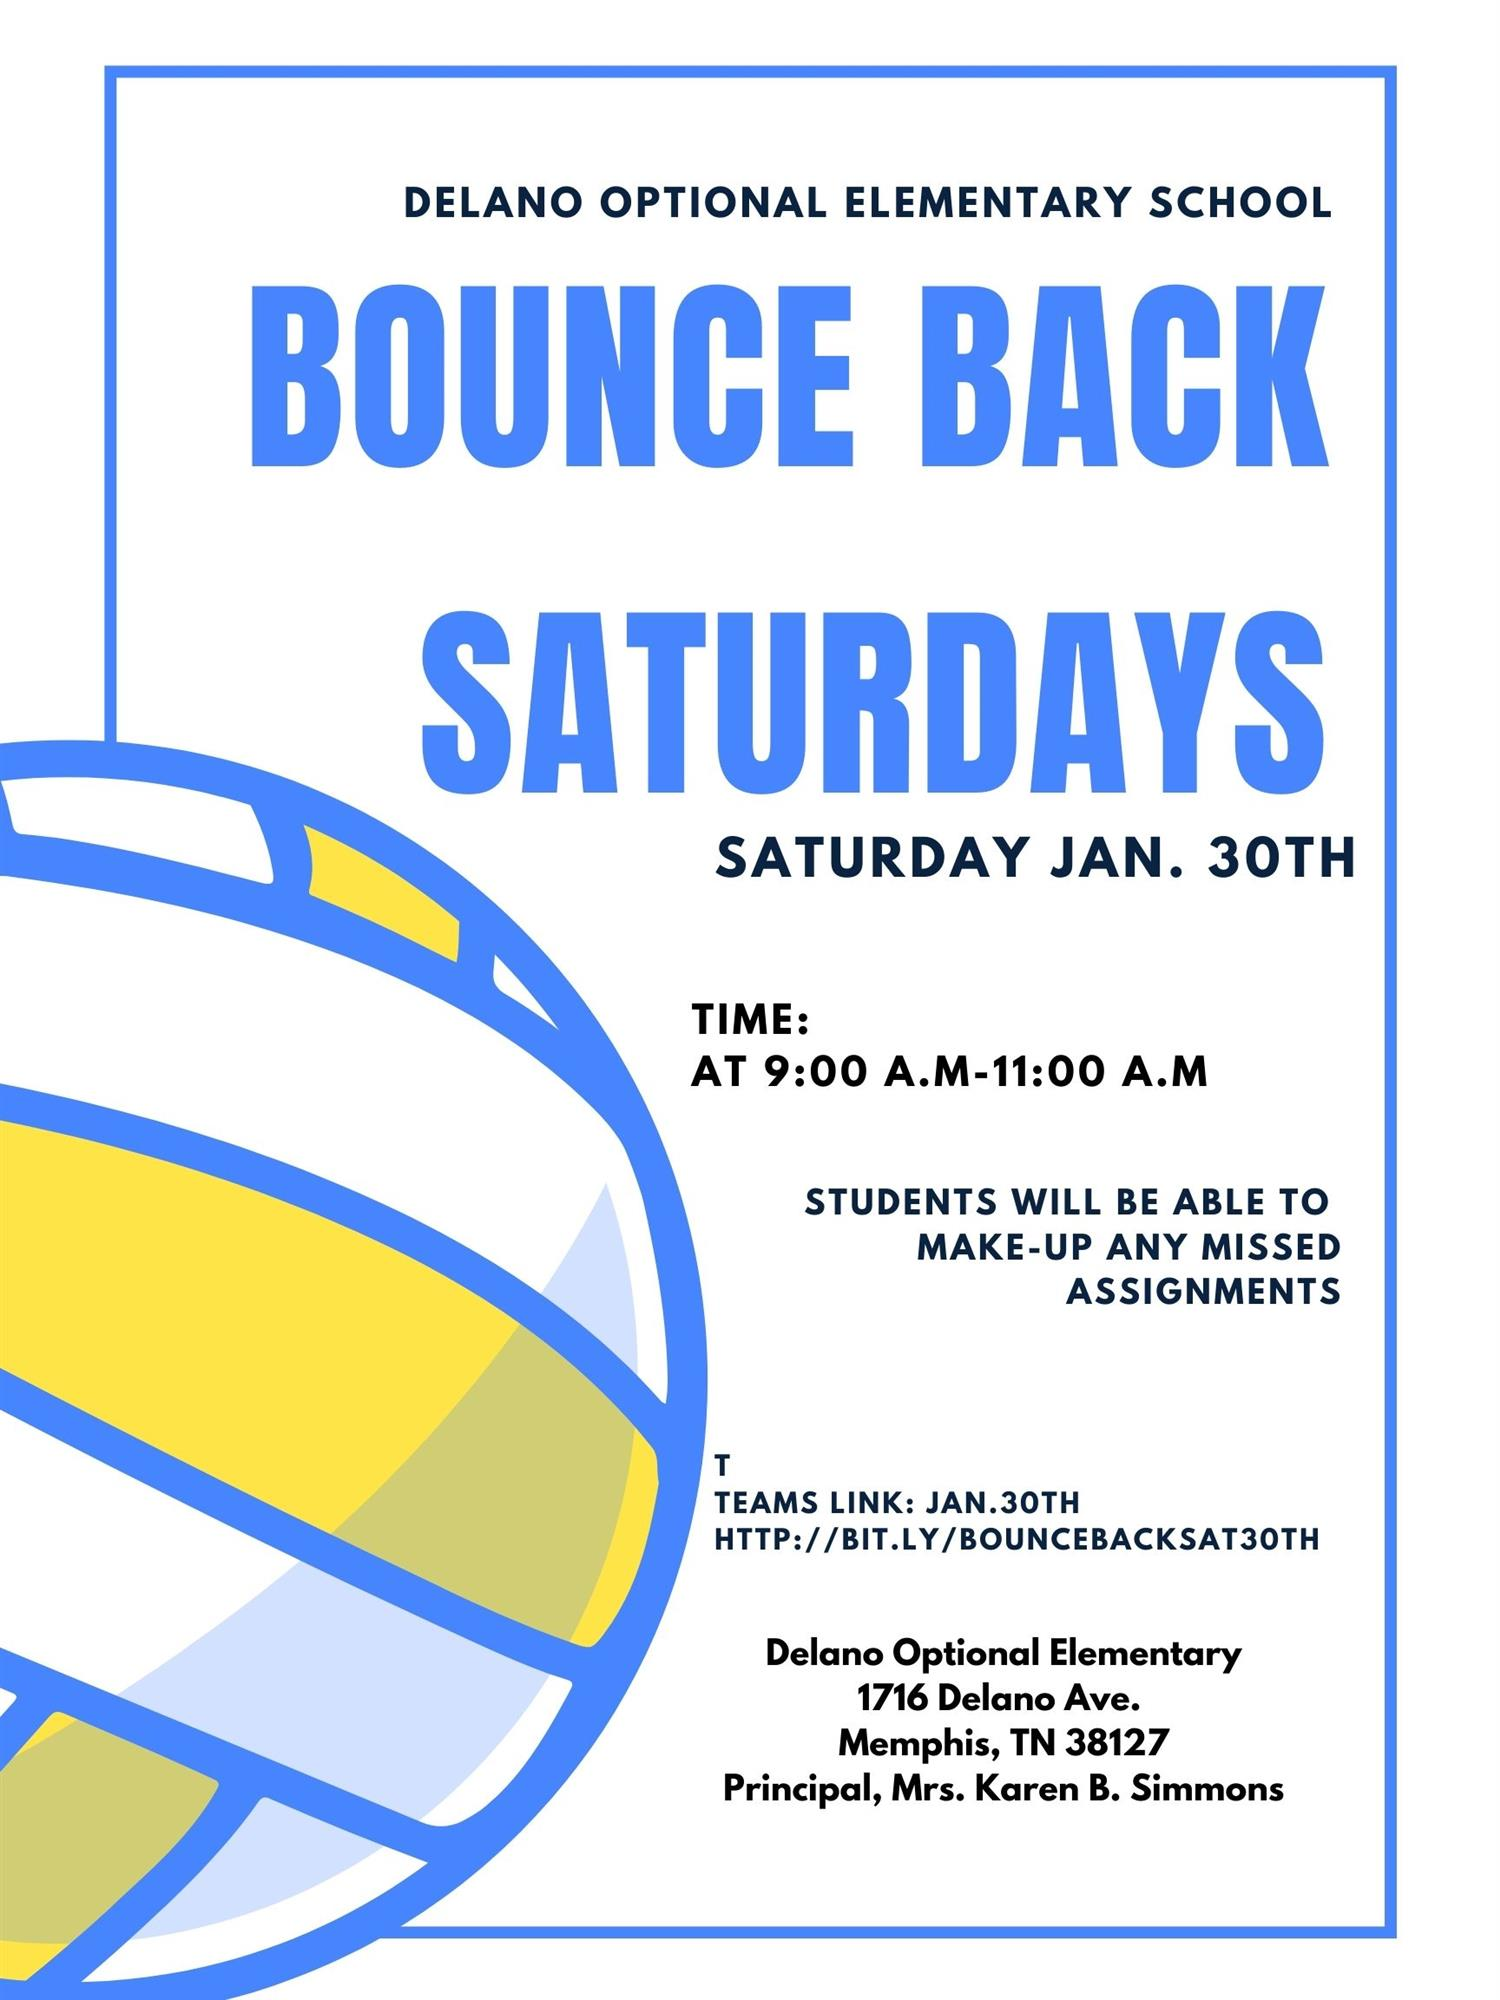 Bounce Back Saturday